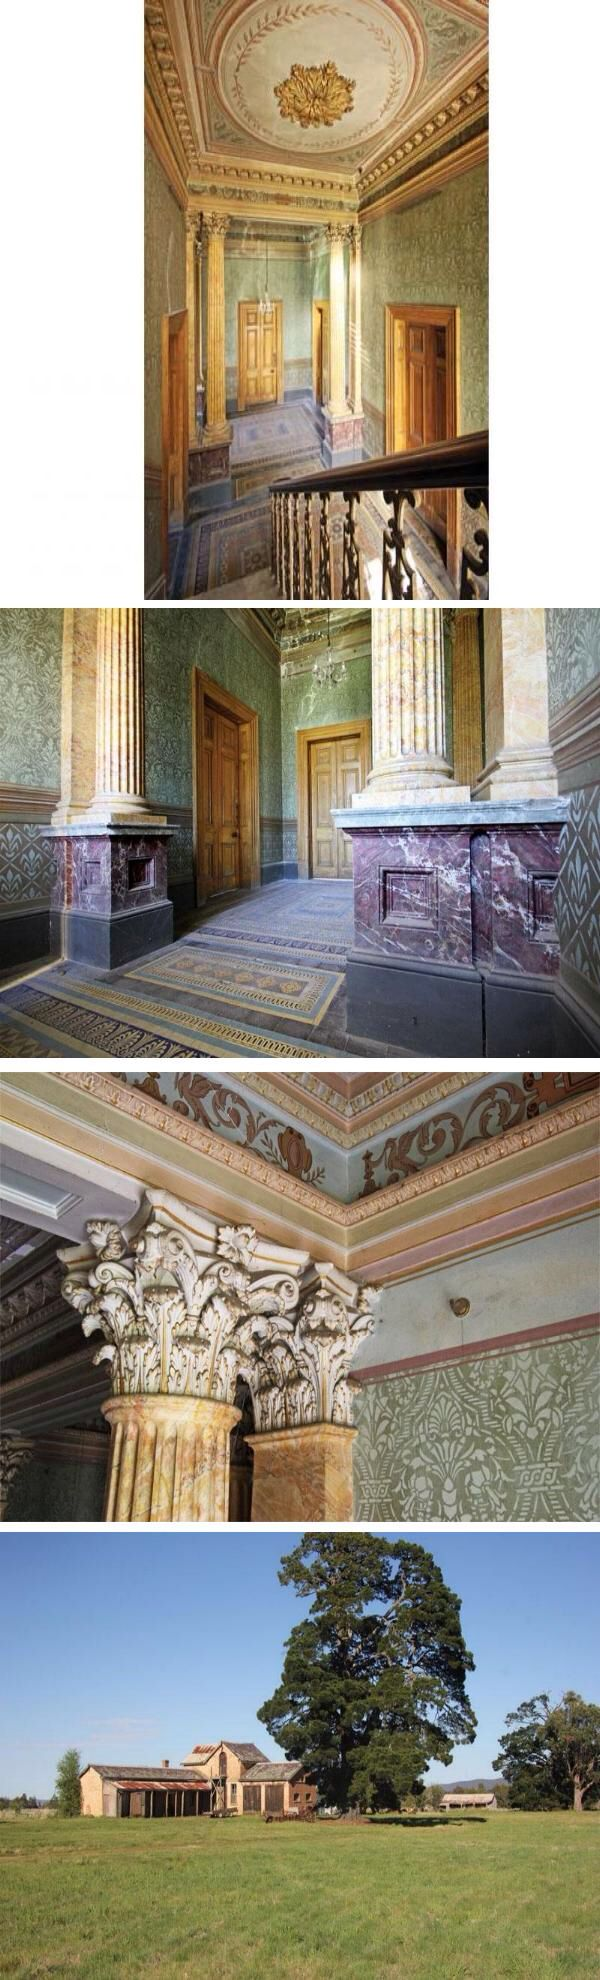 Abandoned Mansion Mintaro Near Romsey In Victoria The Spectacular Entrance Hall